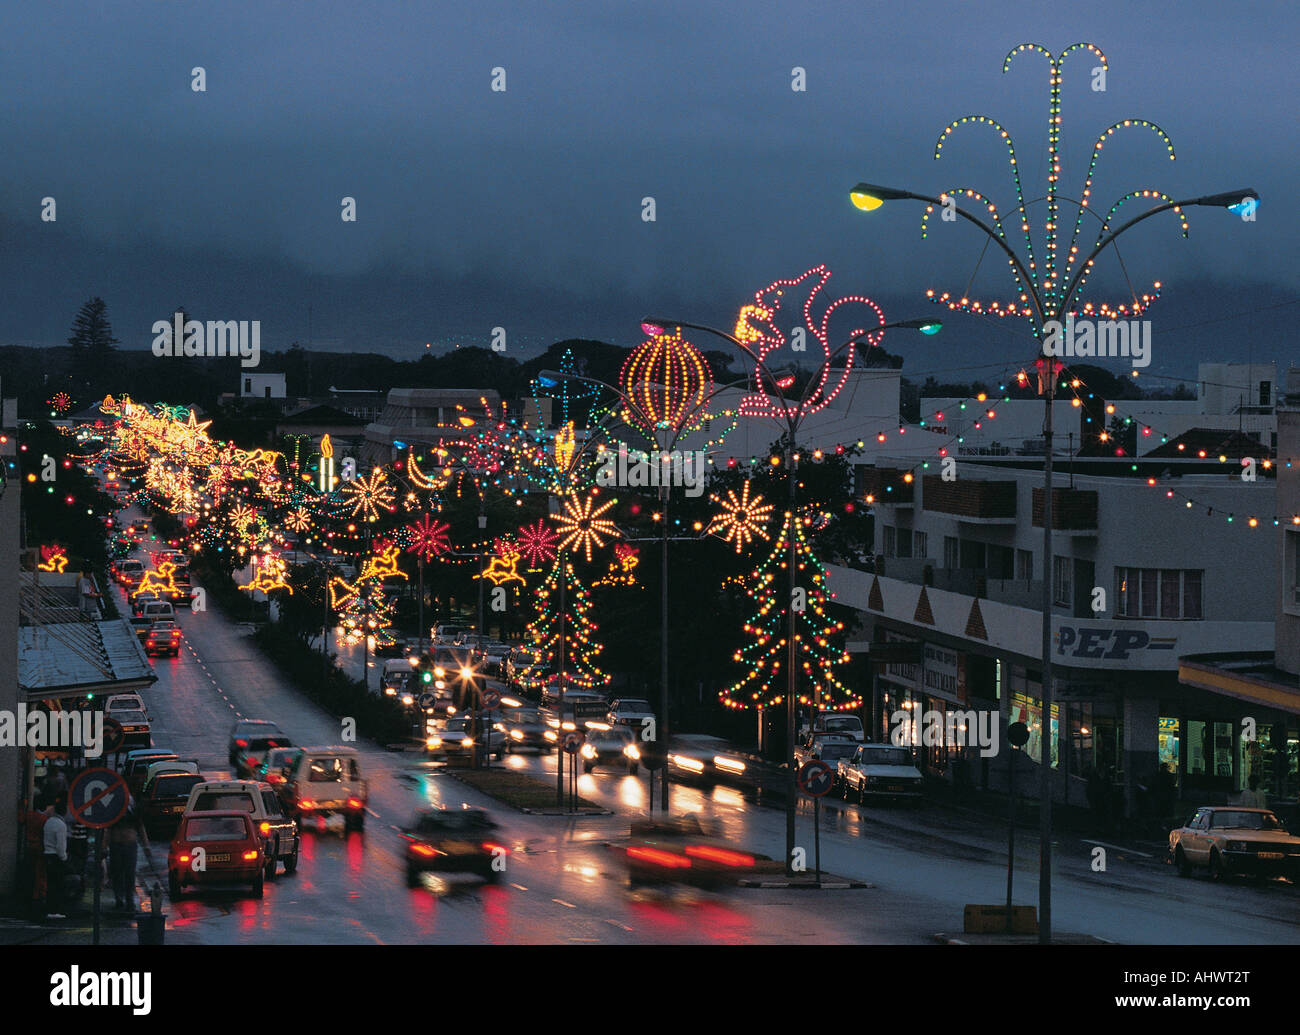 Christmas lights and decorations on a wet street busy with ...